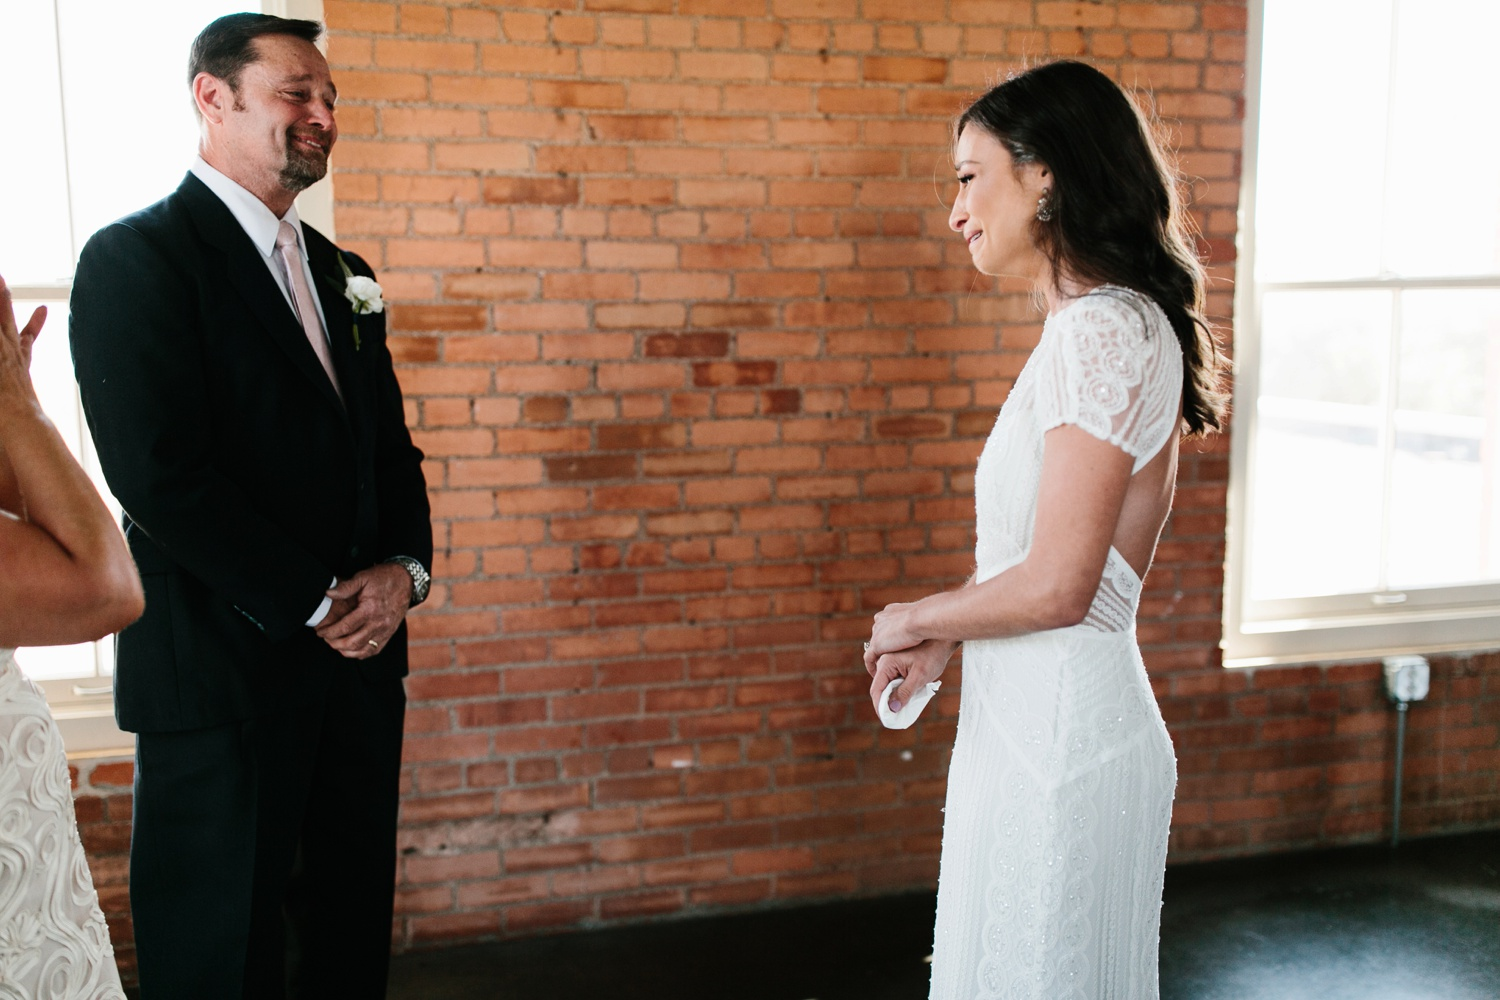 Kadee + Tyler | a raw, emotional wedding at the Filter Building on White Rock Lake in Dallas, TX by North Texas Wedding Photographer, Rachel Meagan Photography 029